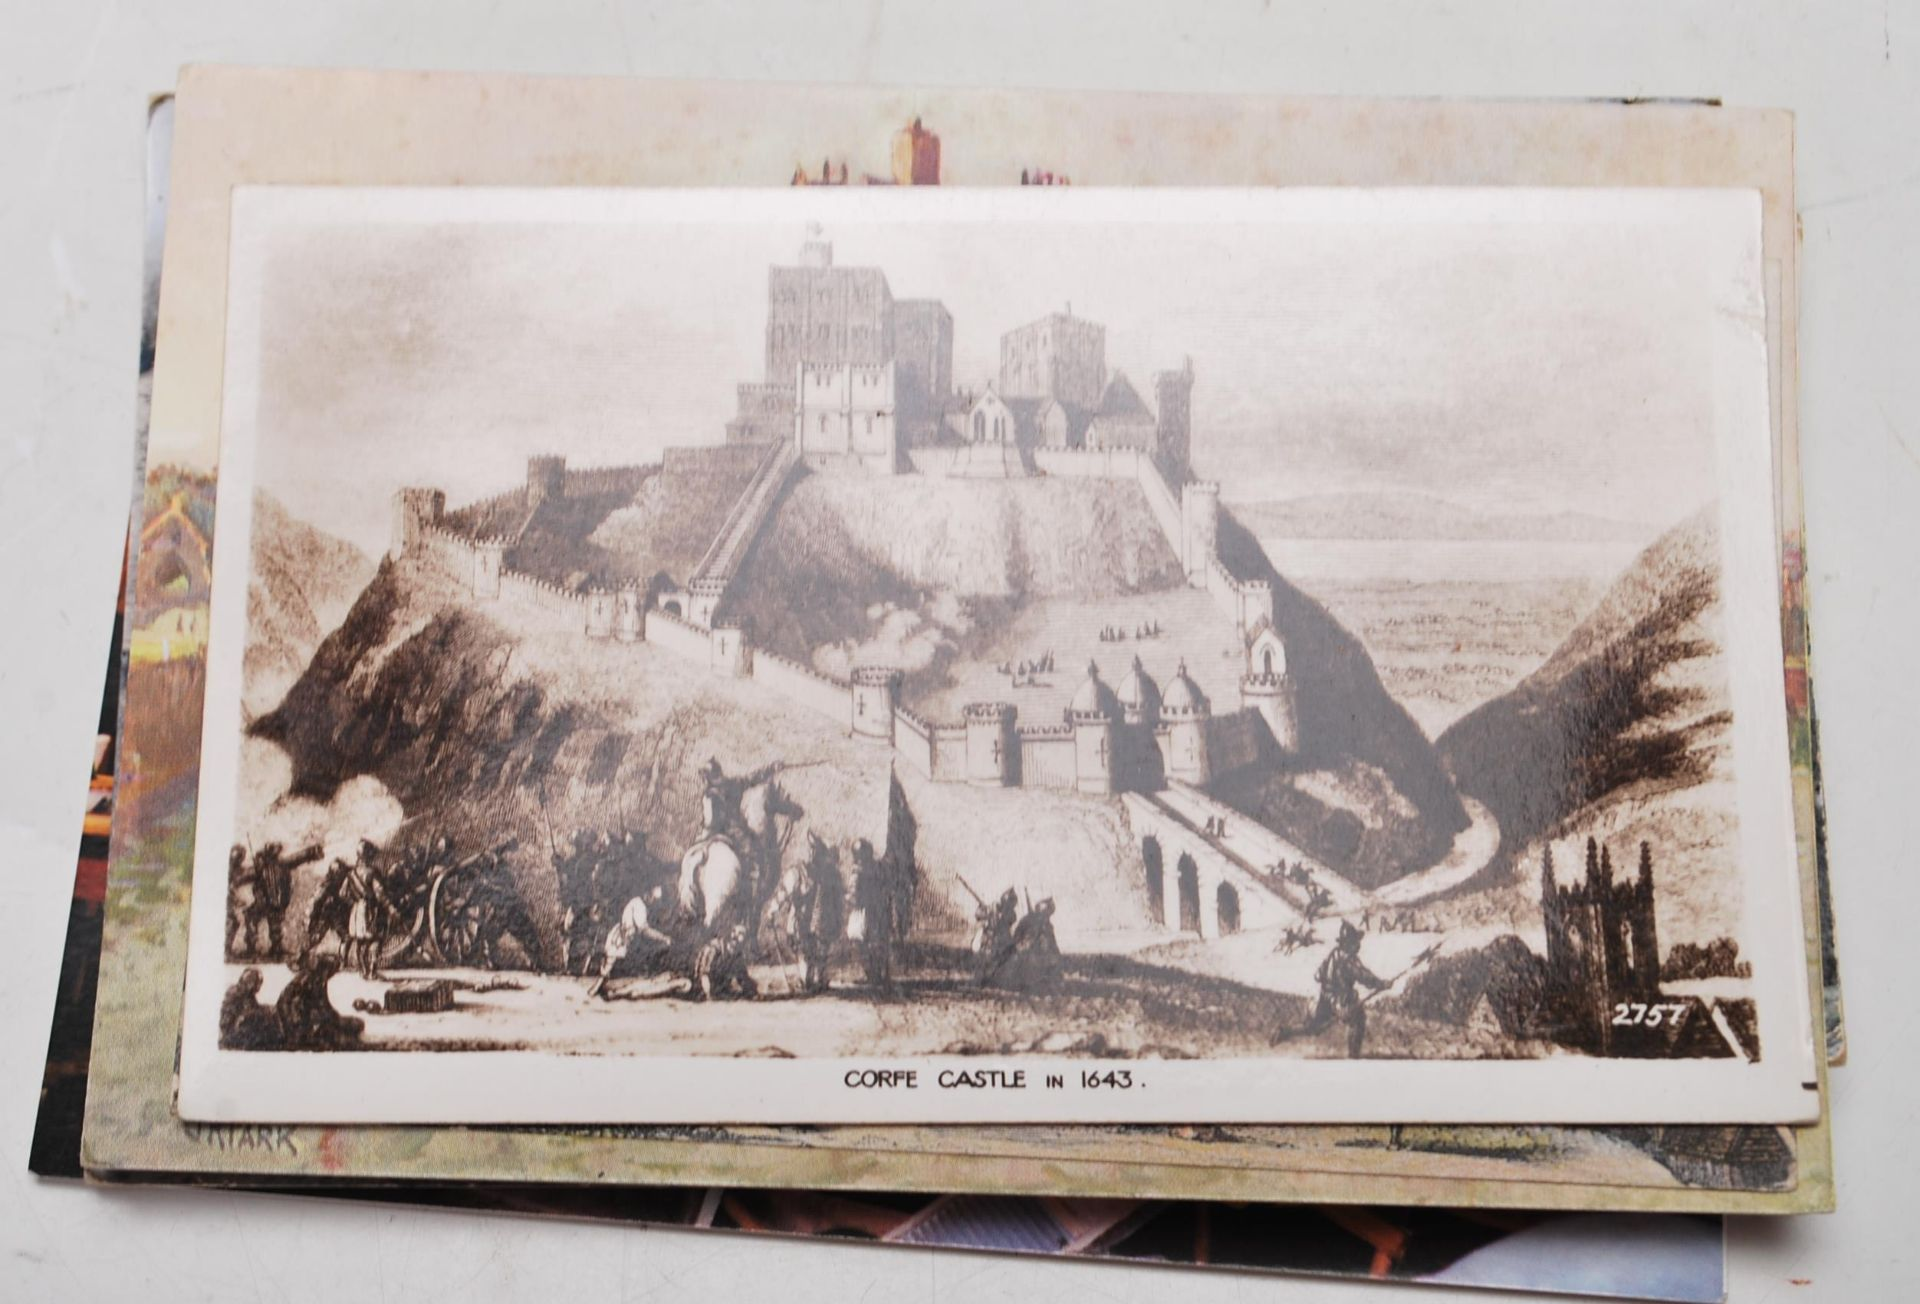 COLLECTION OF VINTAGE POSTCARDS - CORNWALL BRISTOL - Image 3 of 6